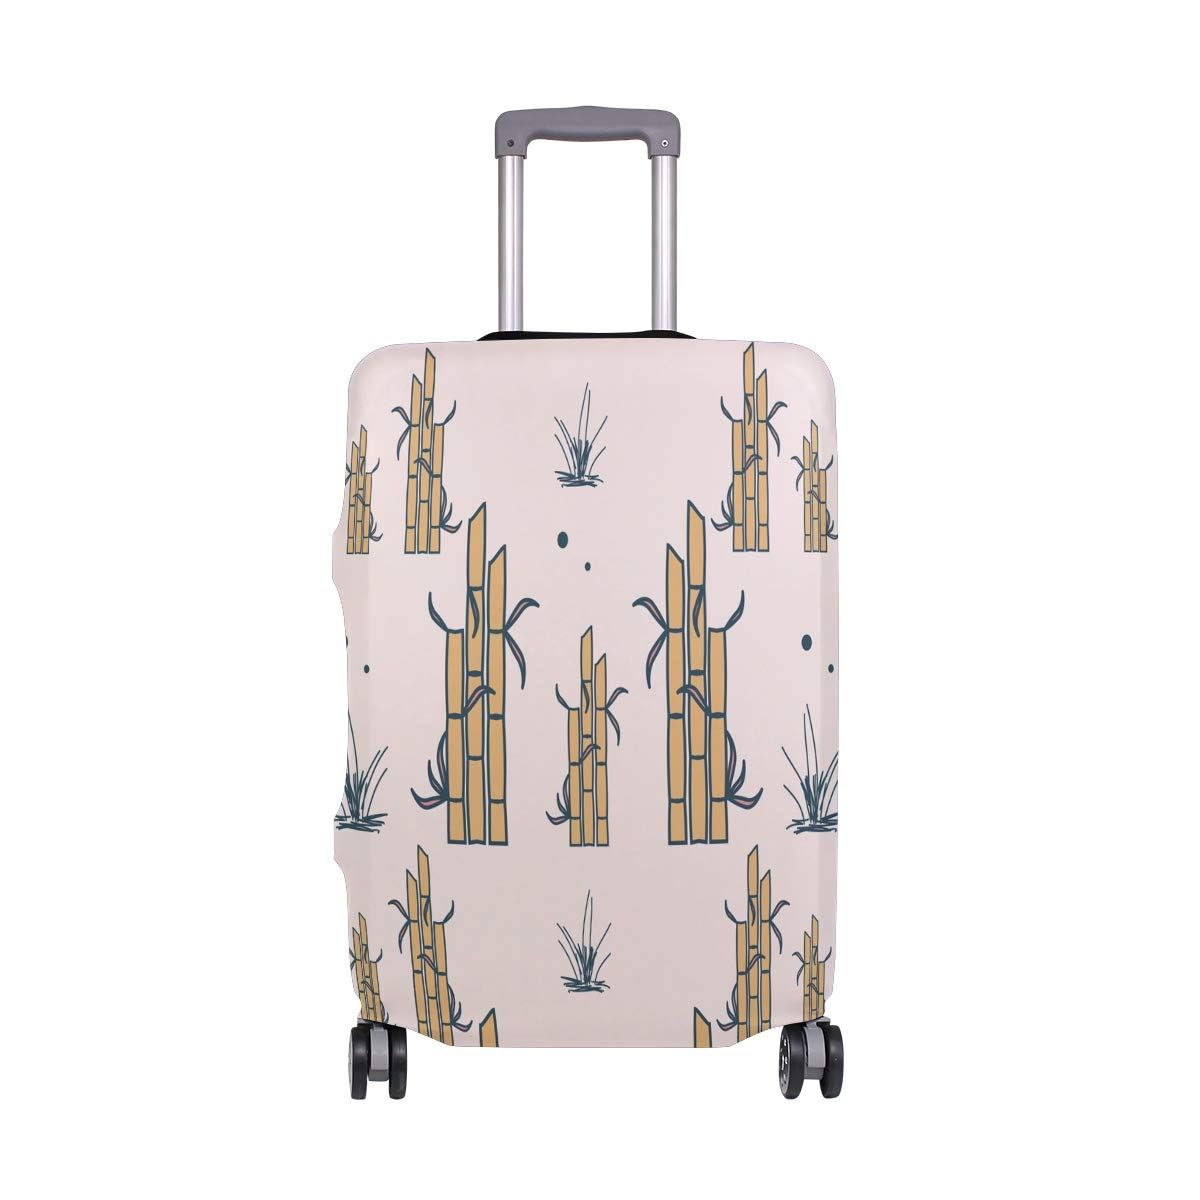 Baggage Covers Bamboo Art Design Pattern Washable Protective Case